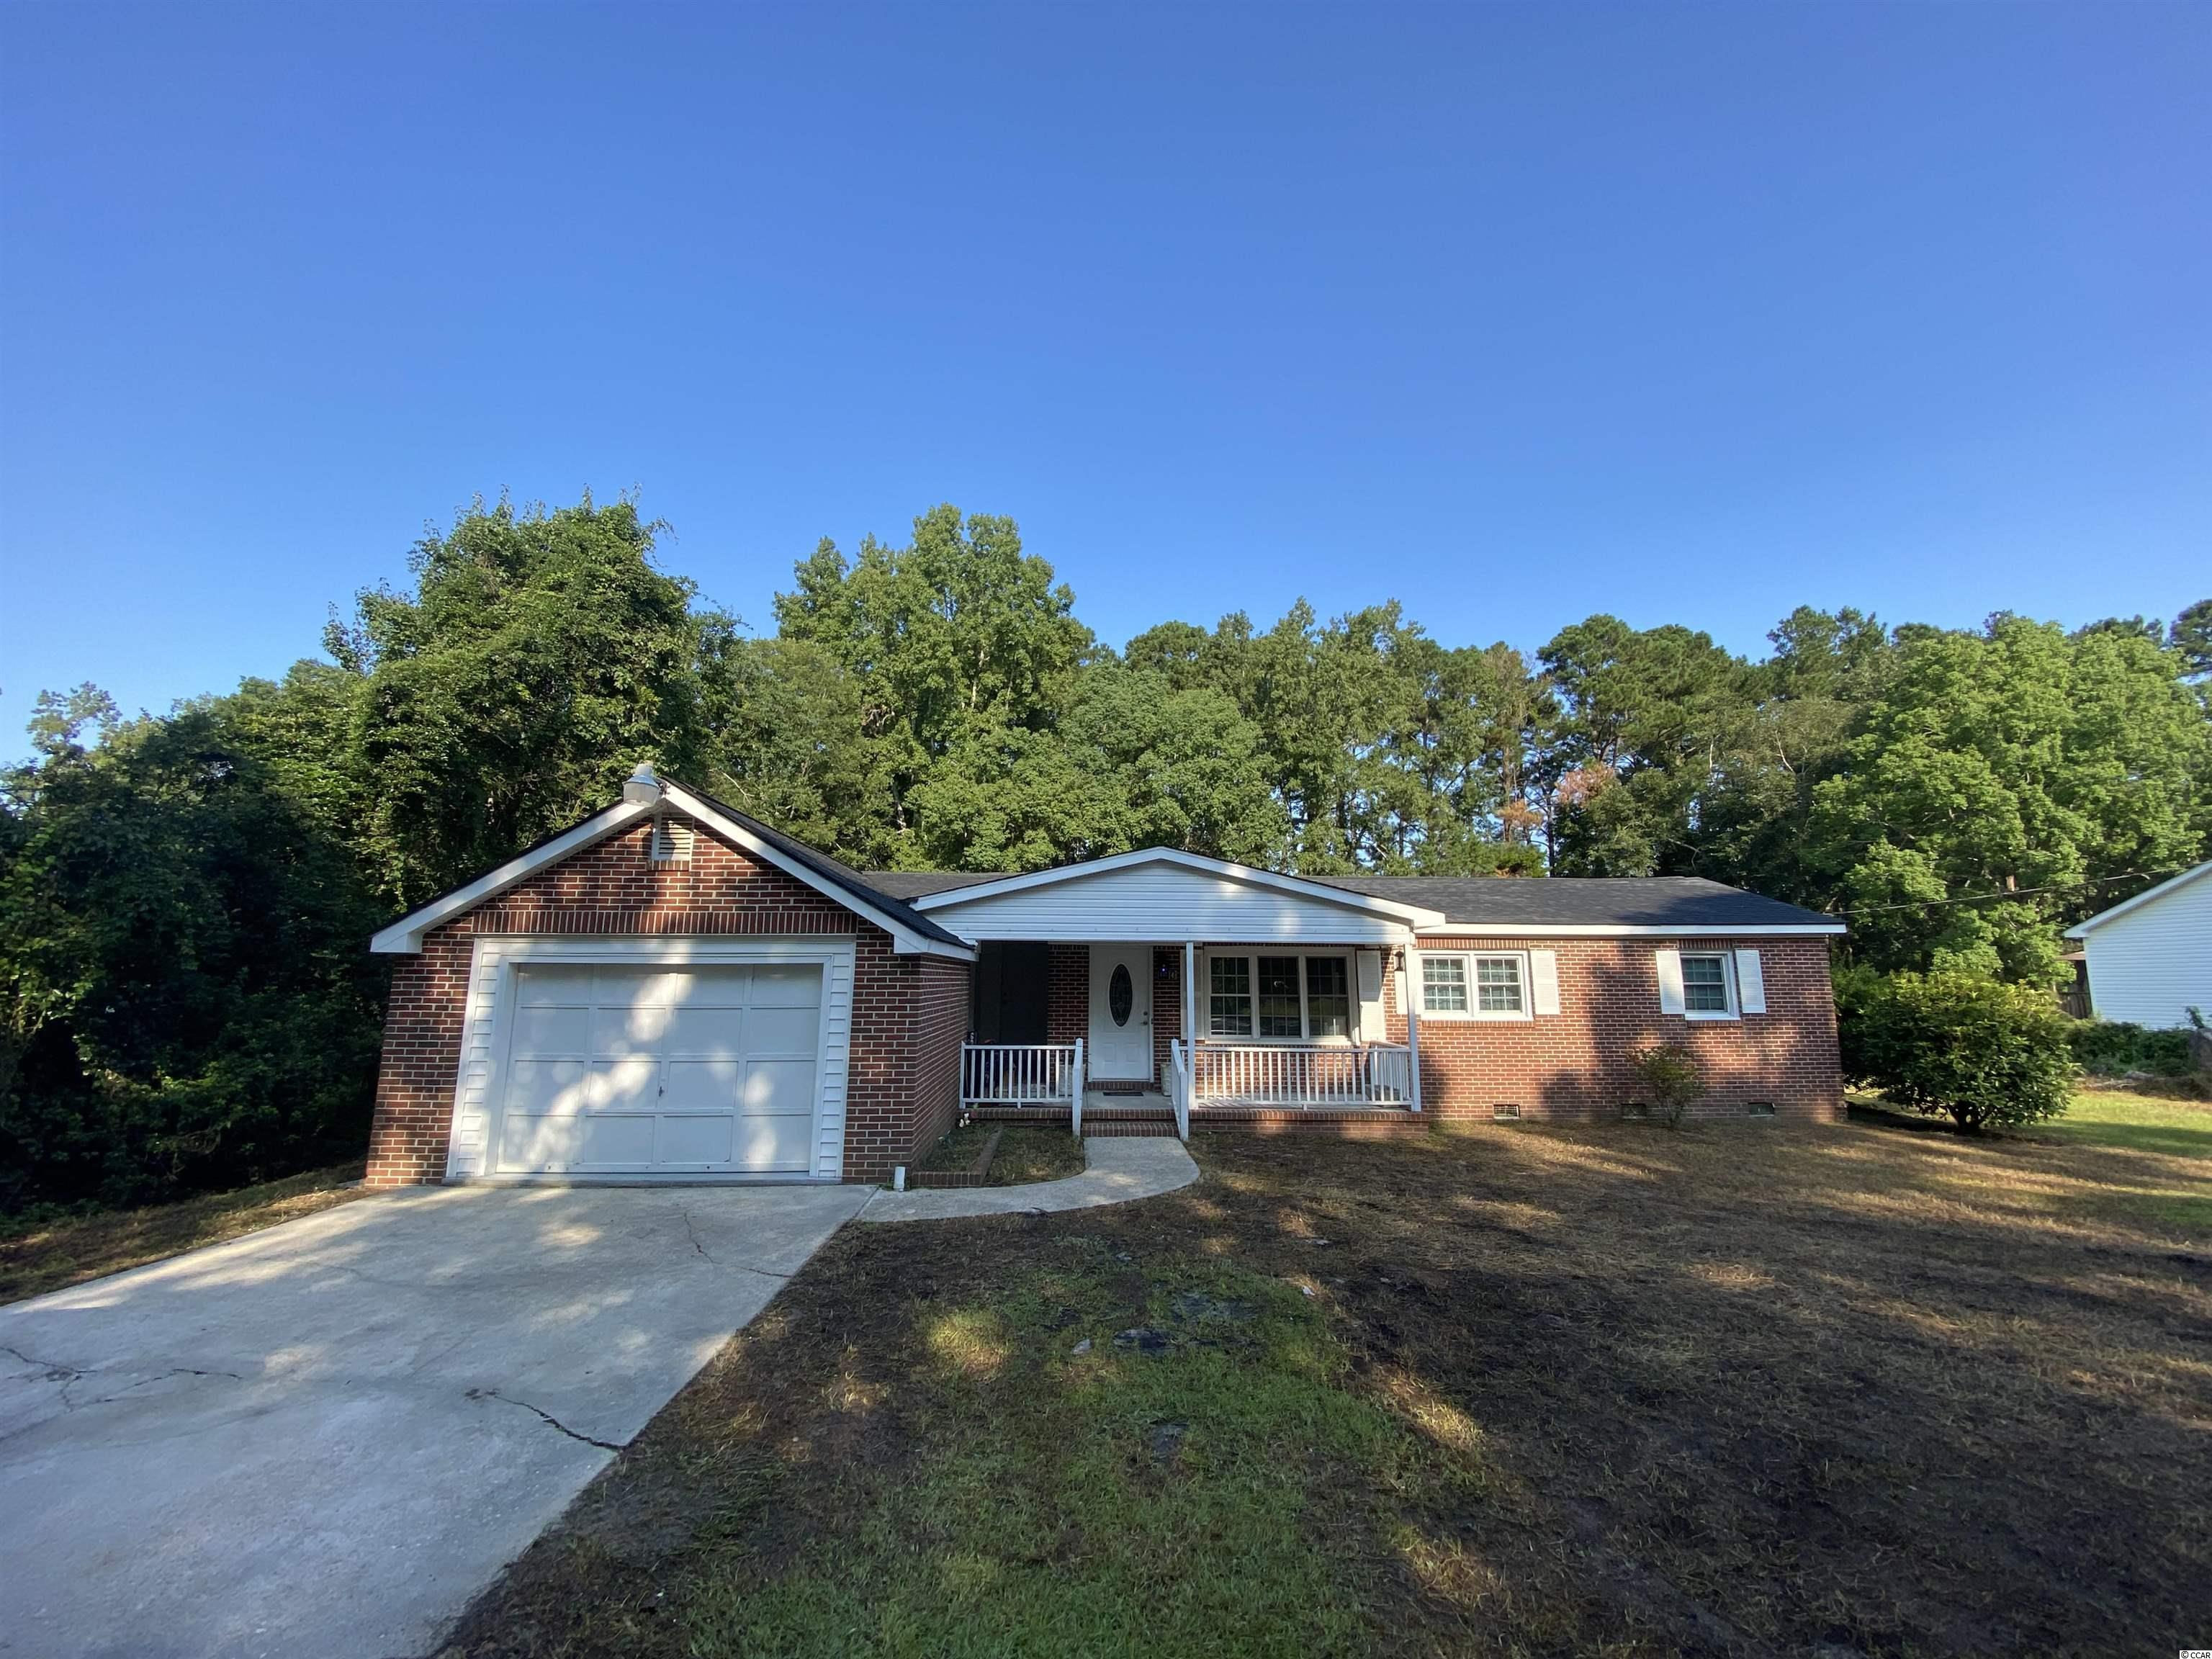 Four bedroom 2 bath plan ranch with updated kitchen. Oversized one car garage. Outside city limits and a fenced in yard.